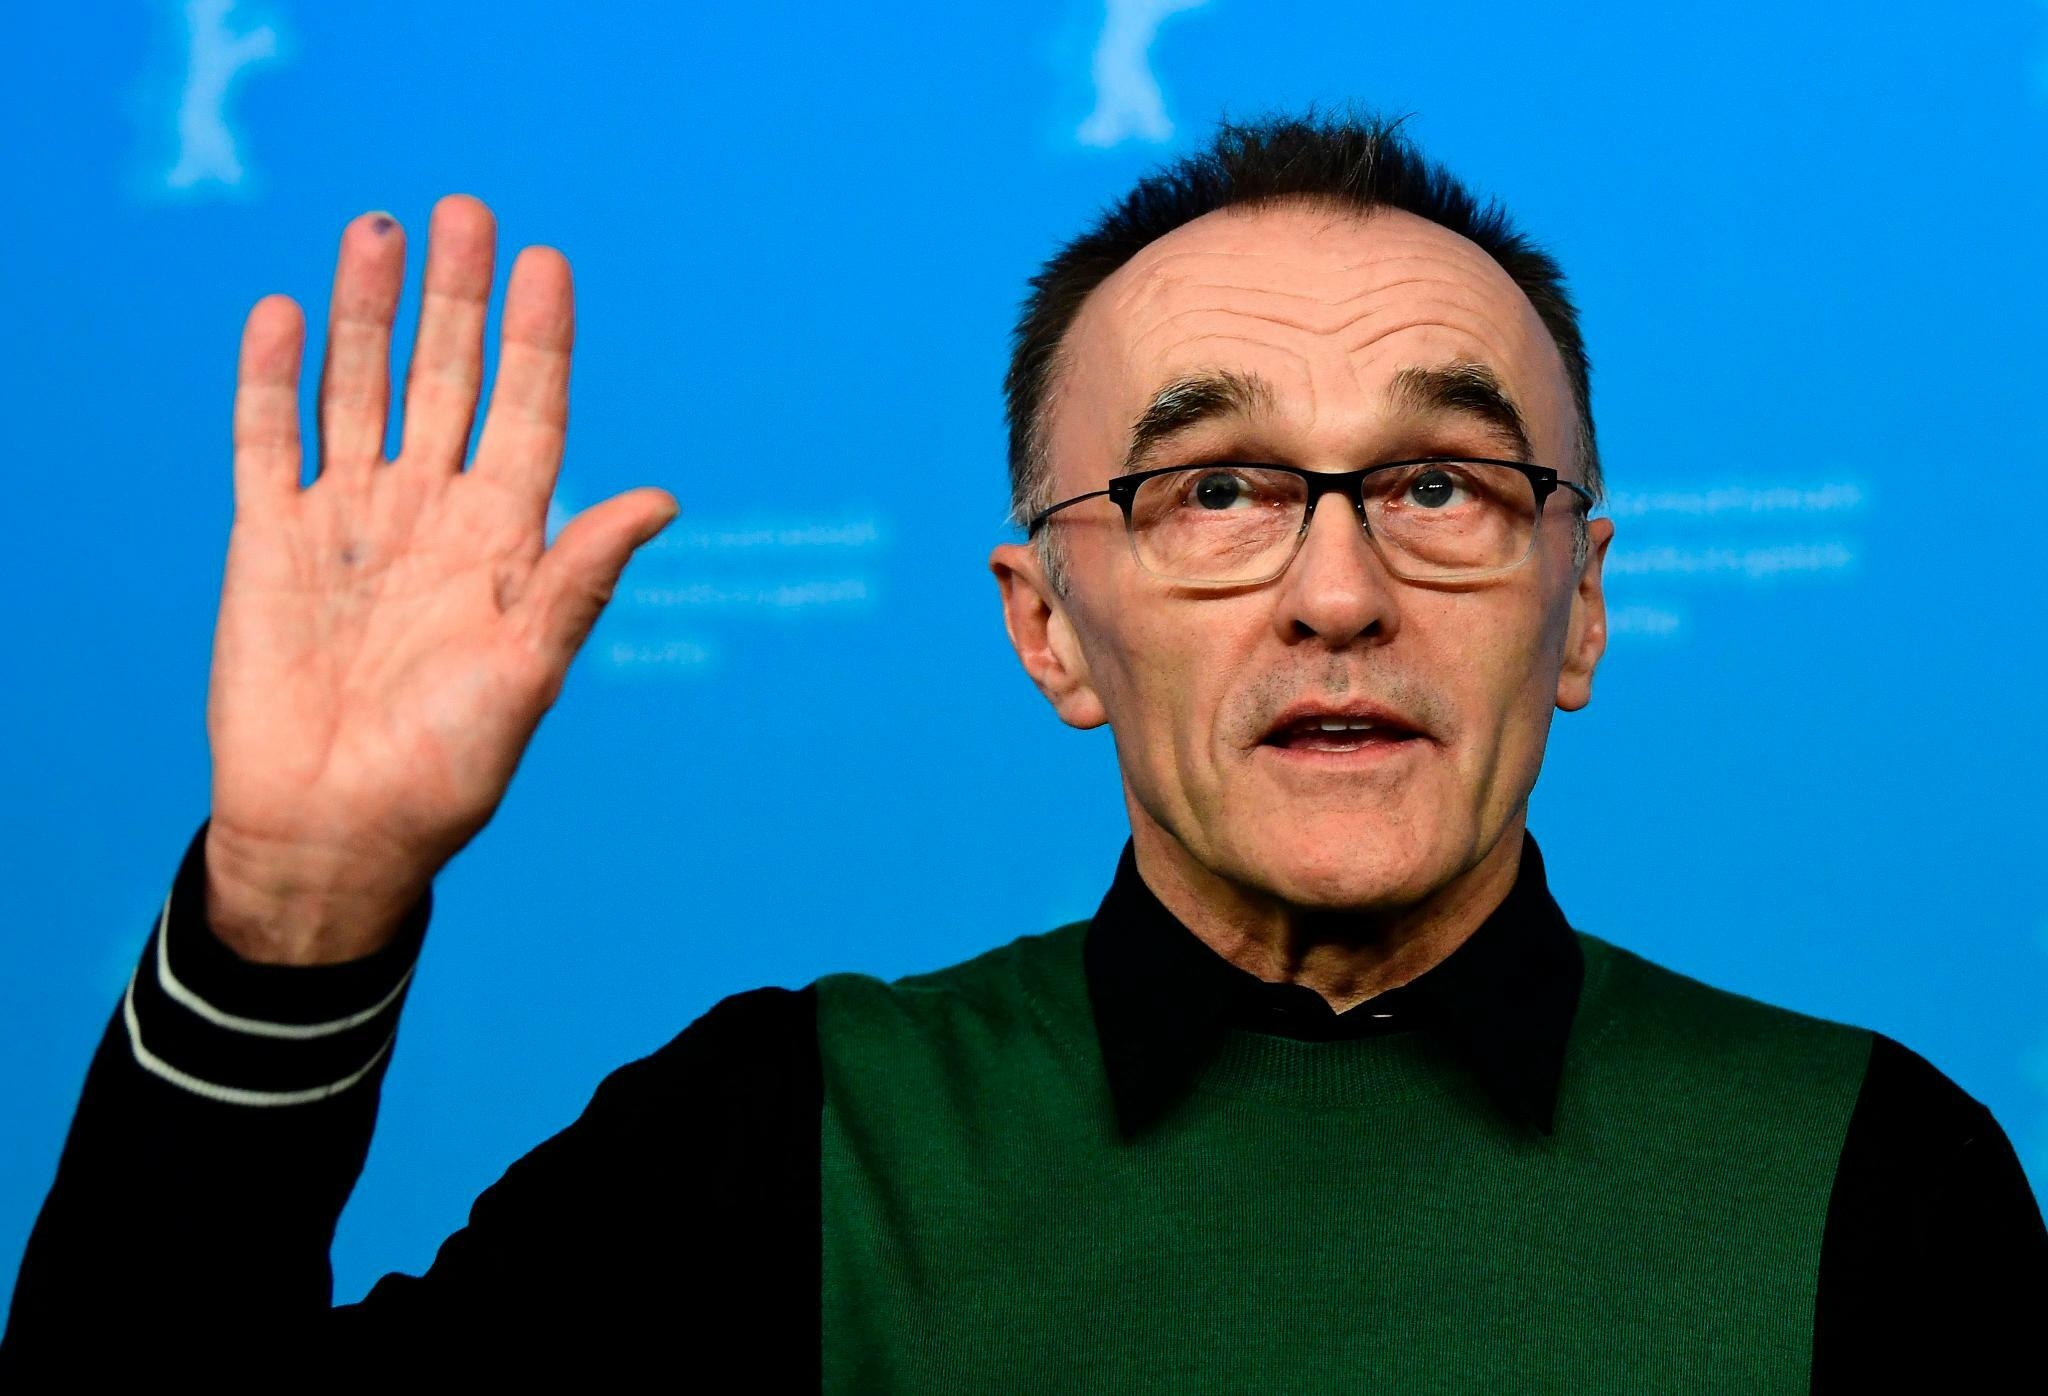 25 Bond Film Regisseur Danny Boyle Springt Von James Bond Film Ab